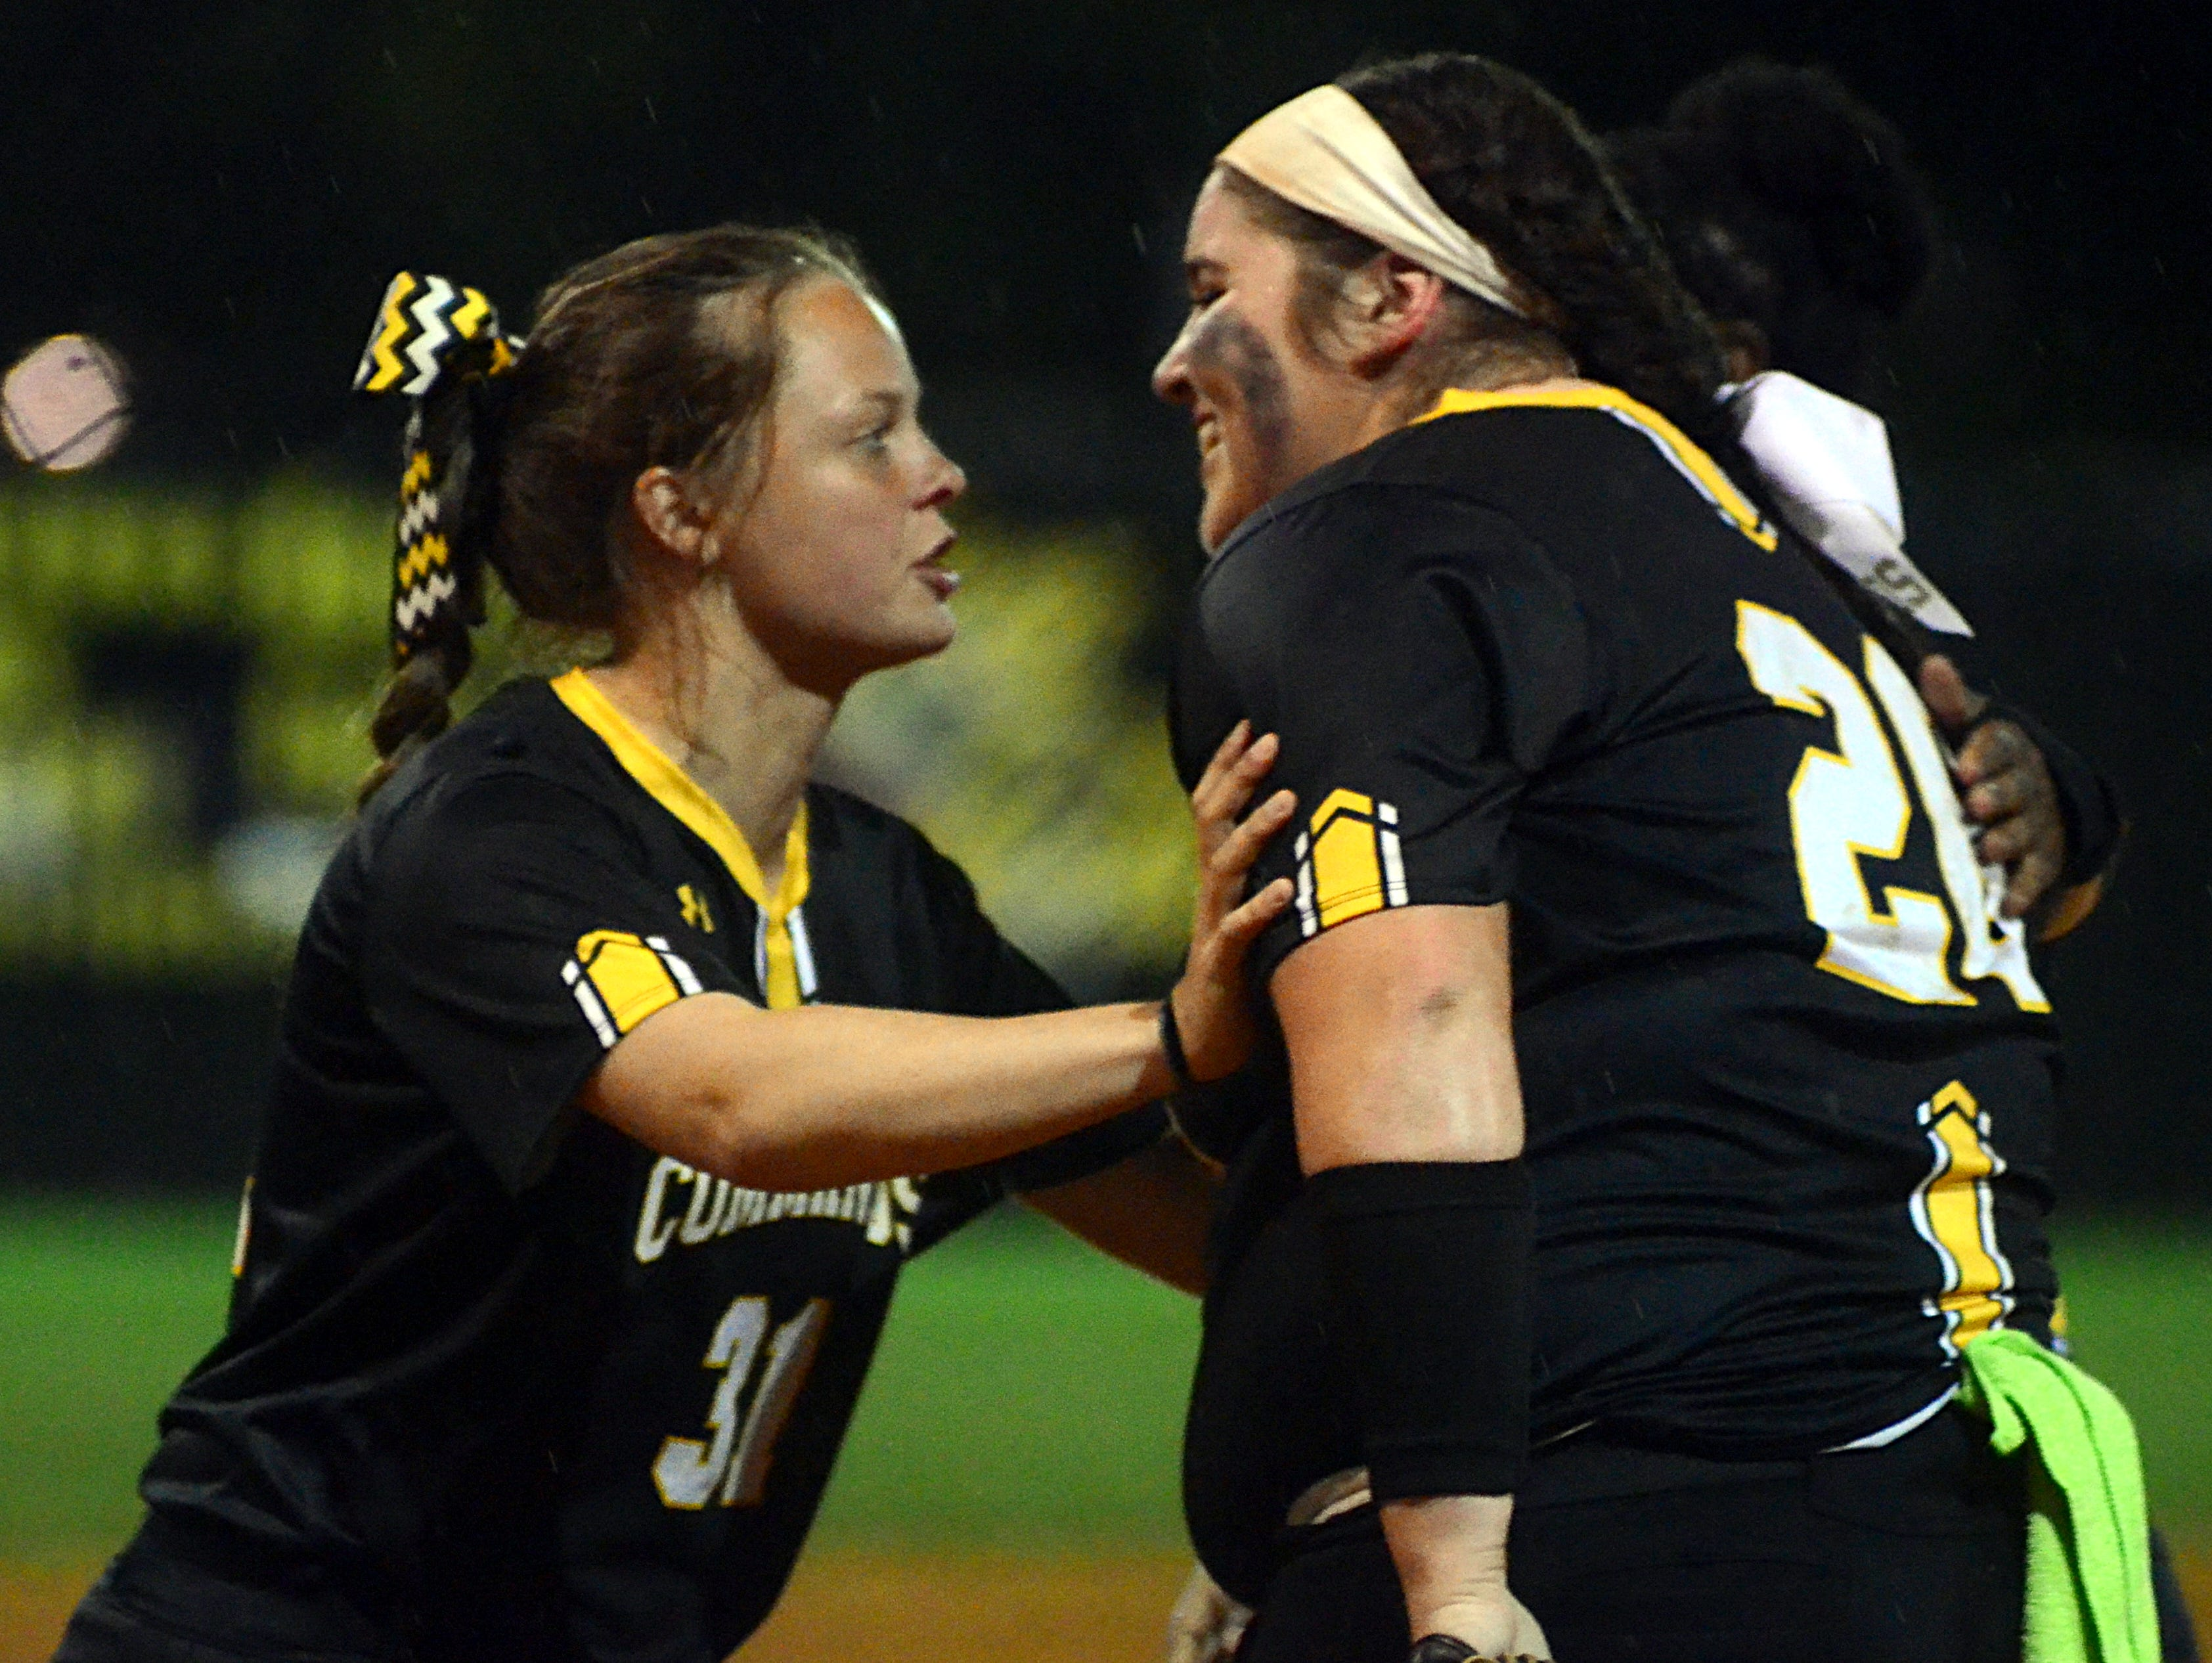 Hendersonville High senior Hannah Atkinson (left) congratulates classmate Carley Carlisle following the Lady Commandos' 5-2 victory over Henry County on Monday evening.